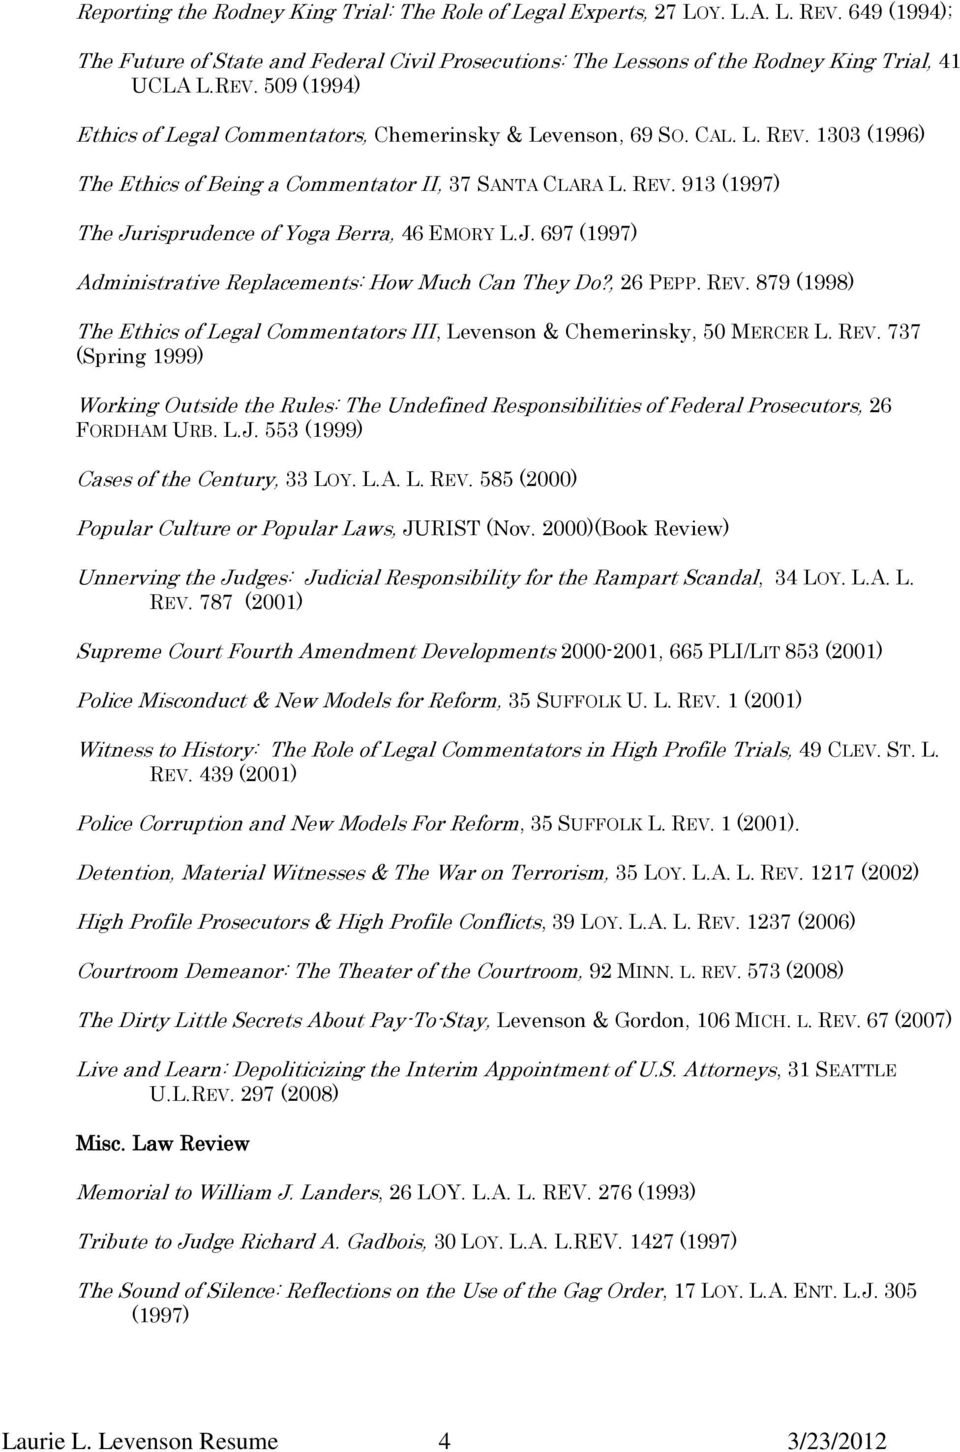 , 26 PEPP. REV. 879 (1998) The Ethics of Legal Commentators III, Levenson & Chemerinsky, 50 MERCER L. REV. 737 (Spring 1999) Working Outside the Rules: The Undefined Responsibilities of Federal Prosecutors, 26 FORDHAM URB.